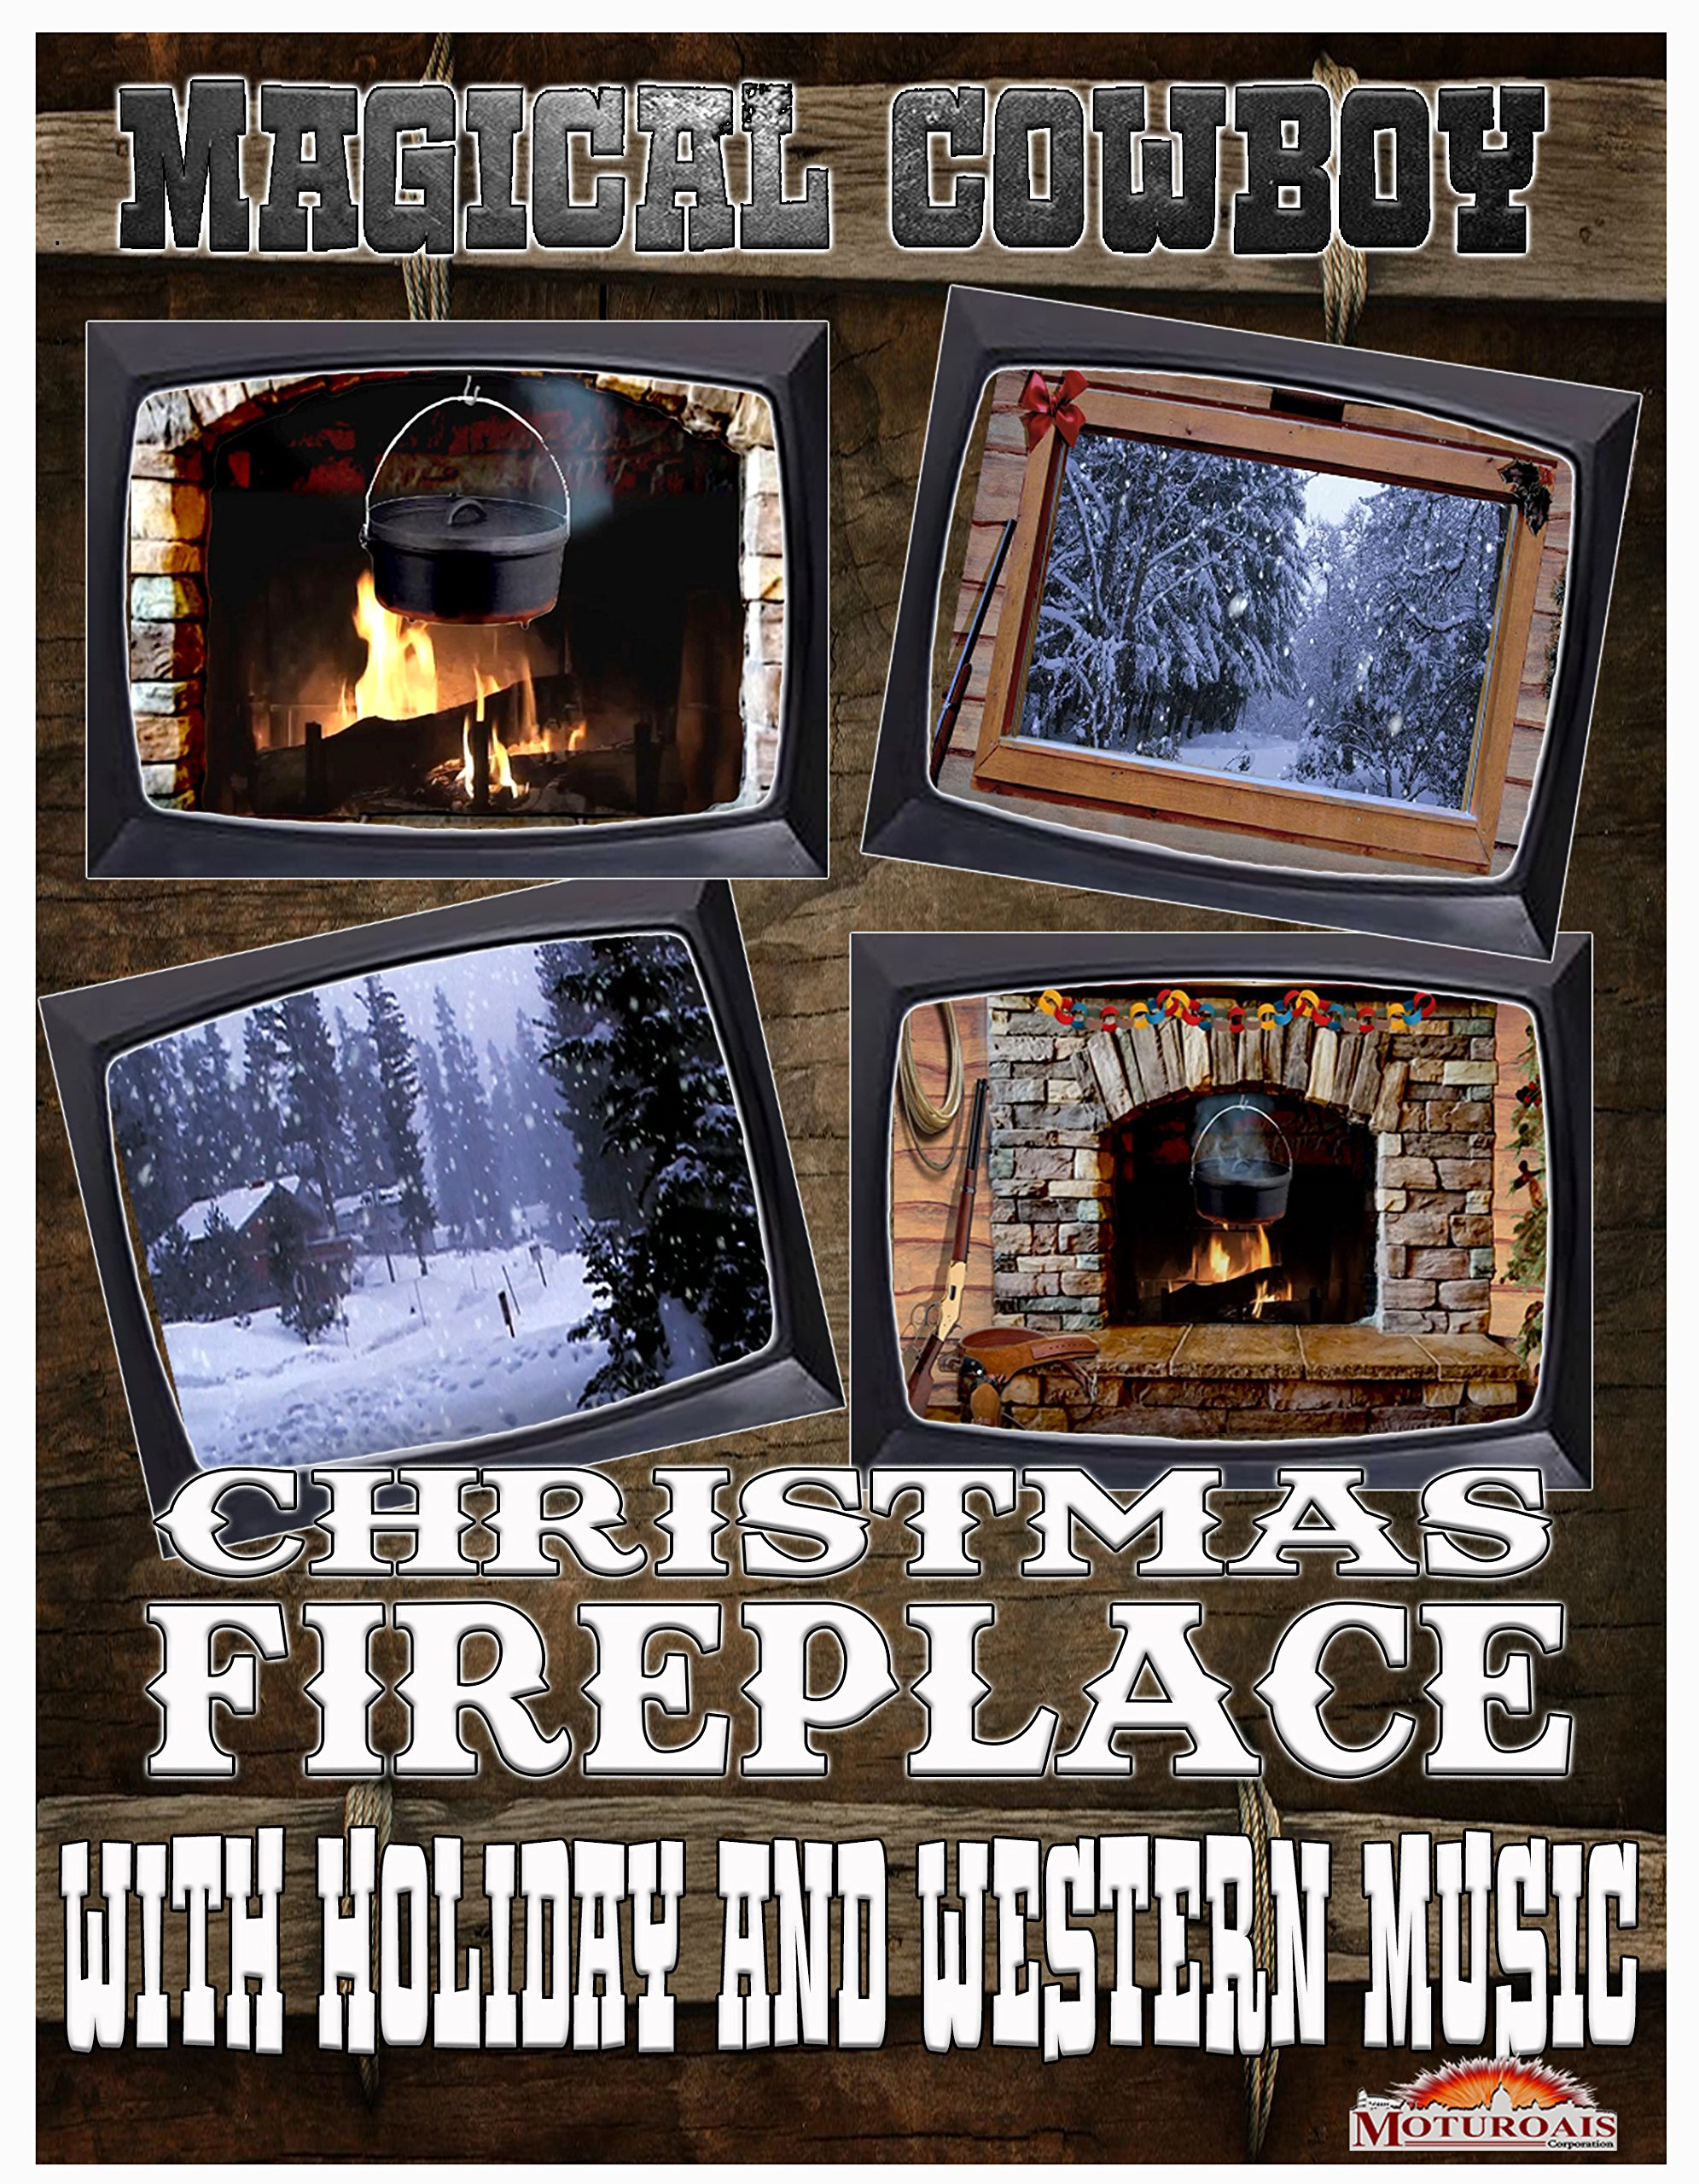 Magical Cowboy Christmas Fireplace With Holiday And Western Music